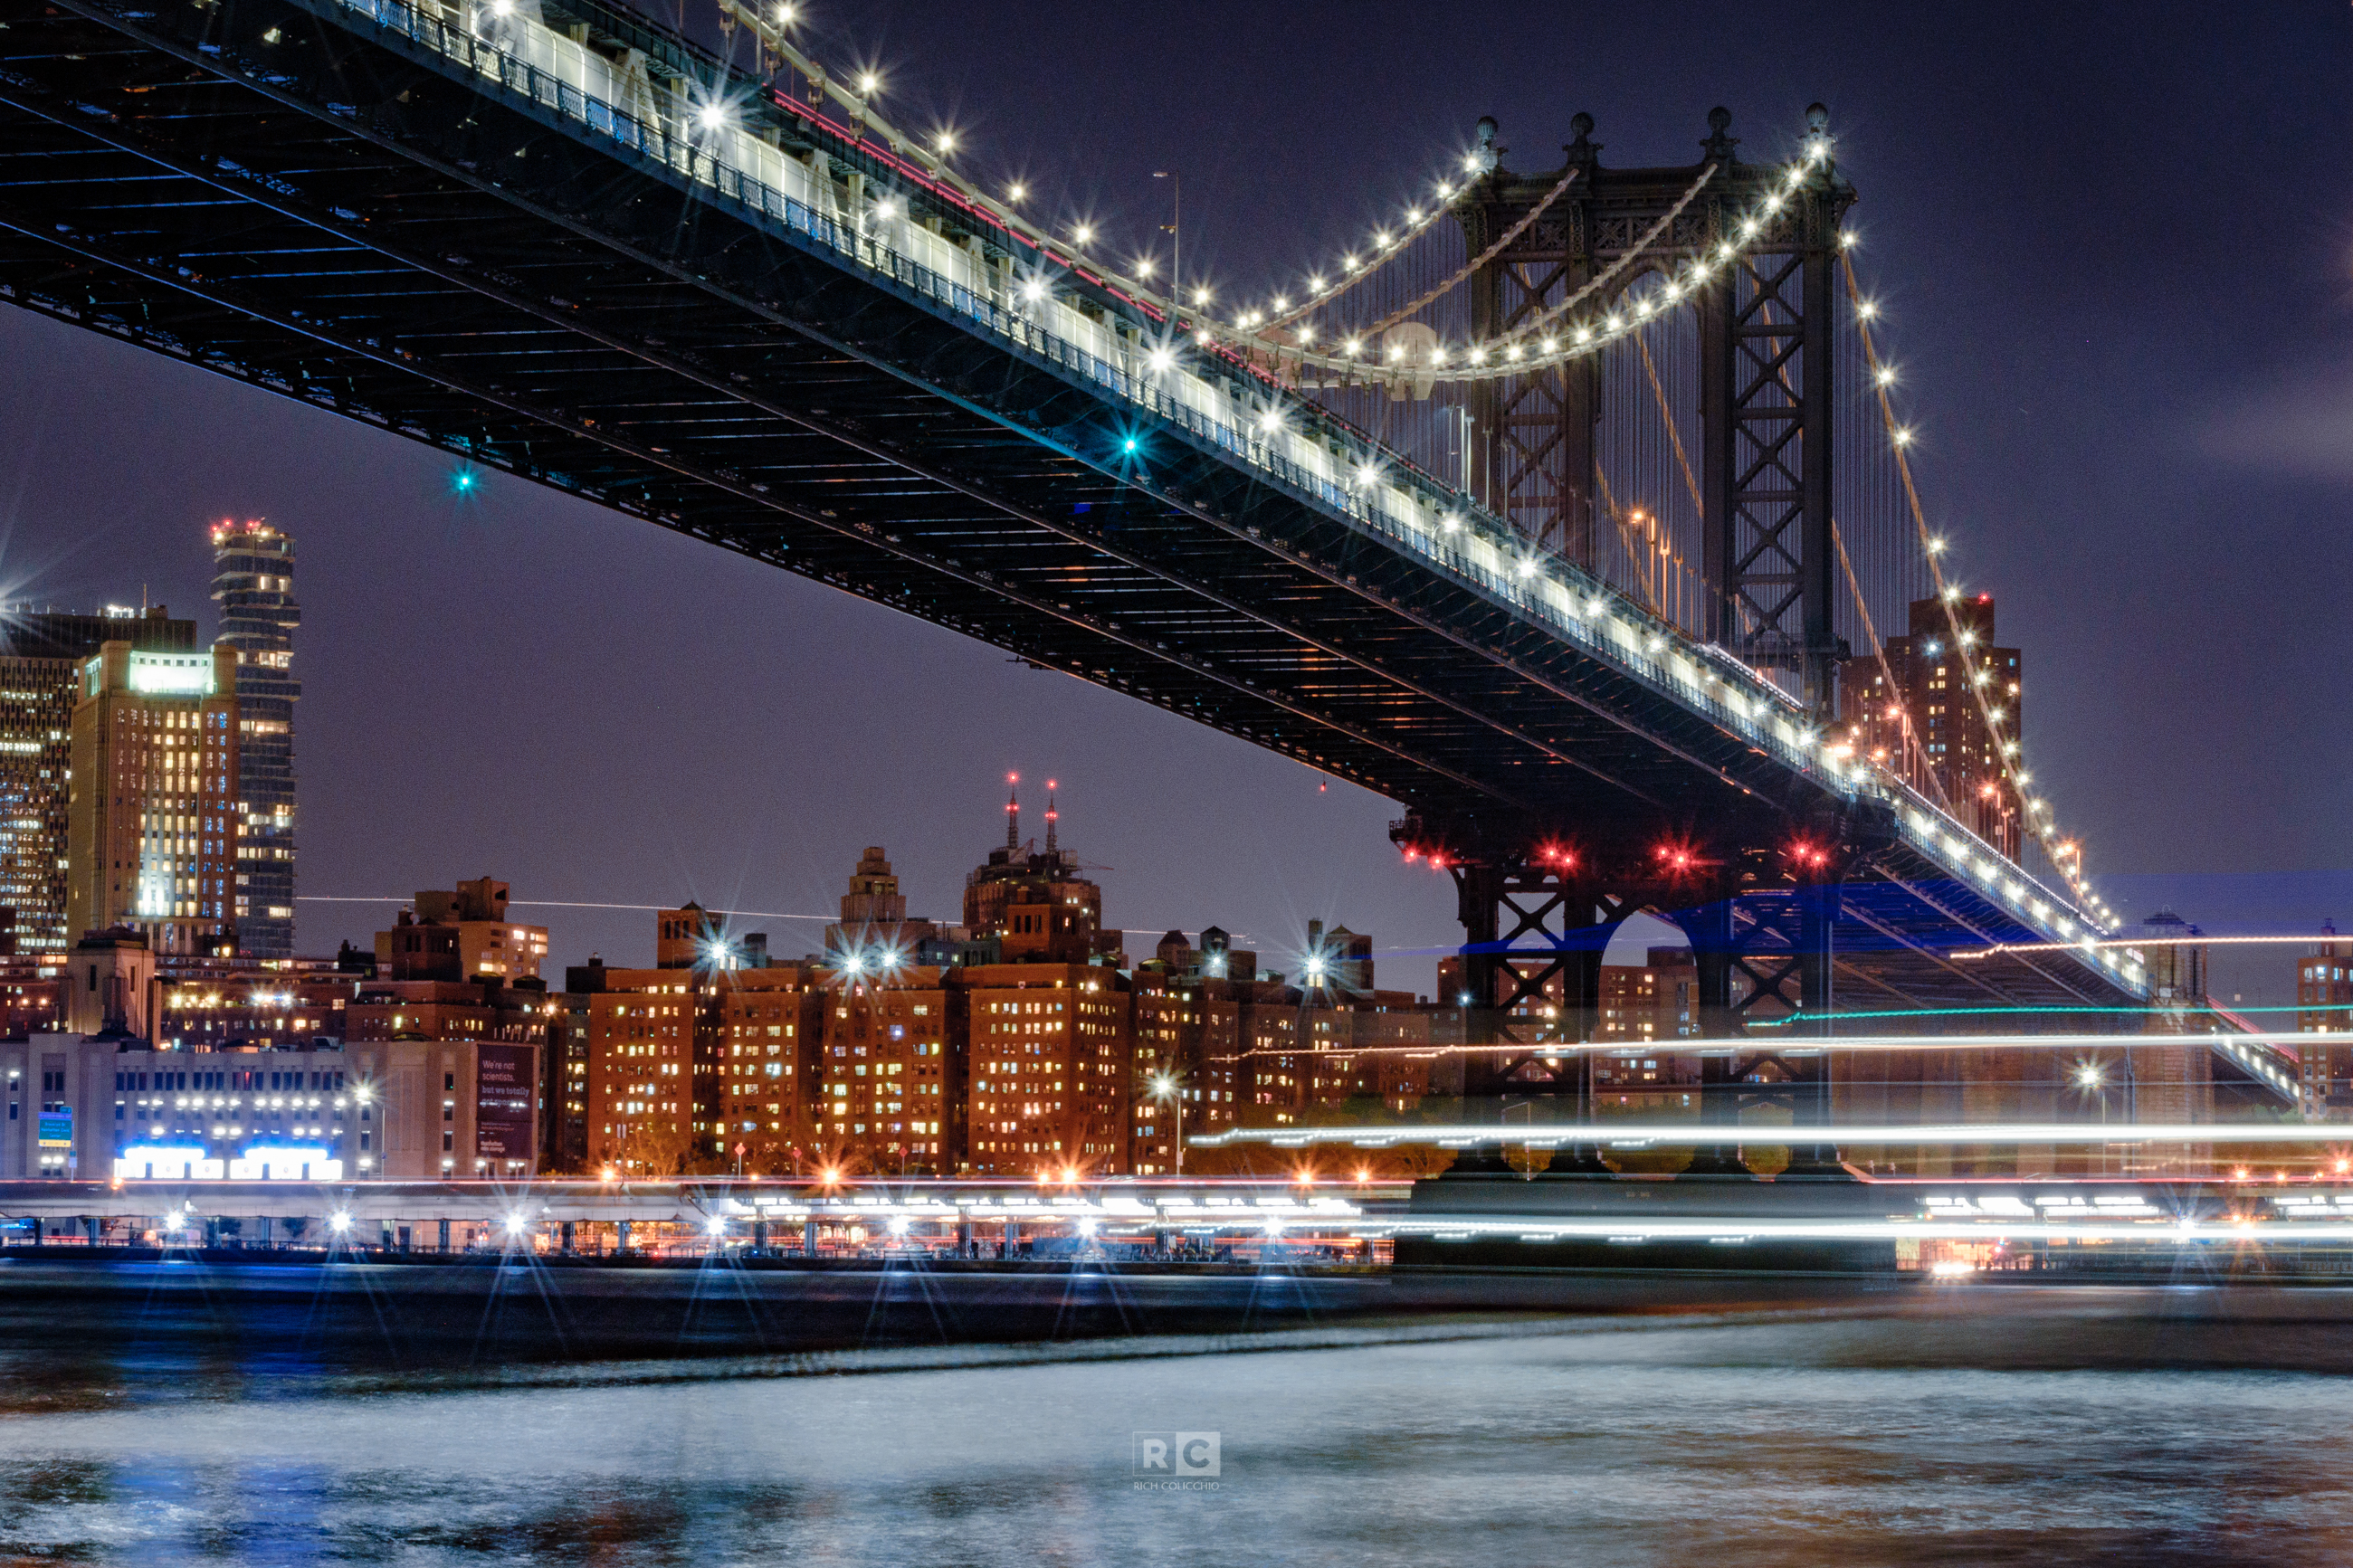 Light Trails under the Manhattan Bridge